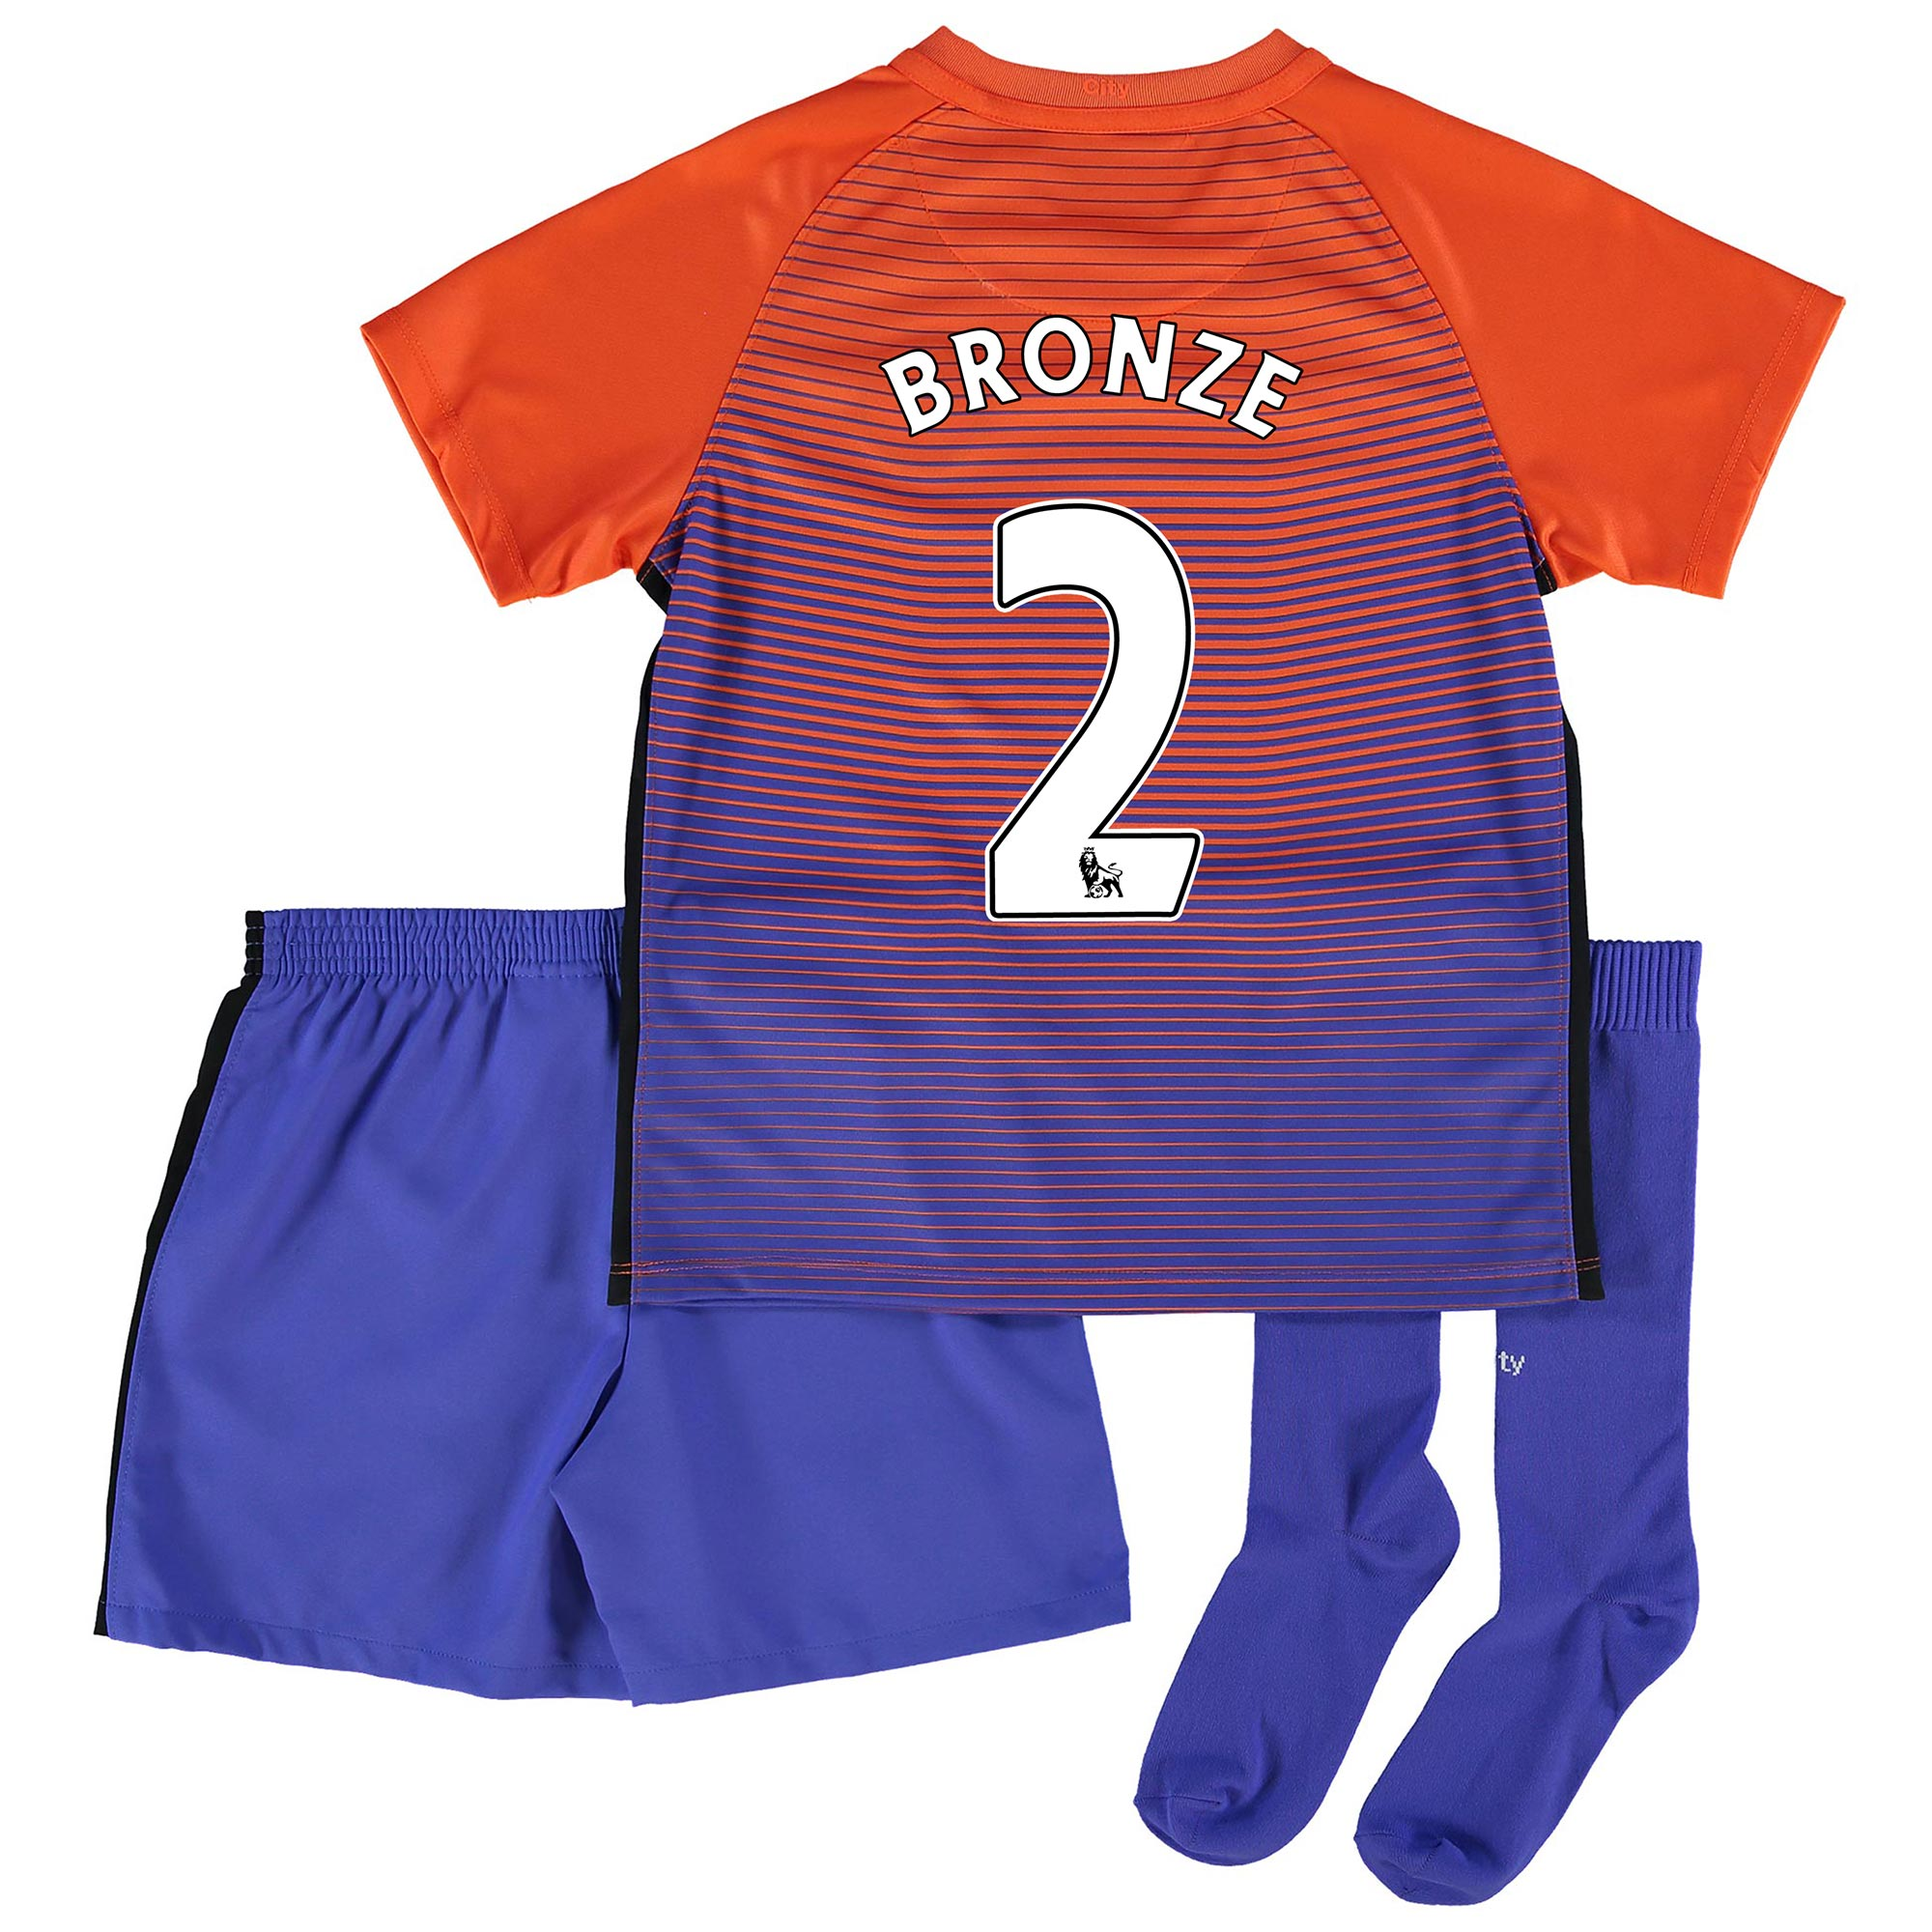 Manchester City Third Stadium Kit 2016-17 - Little Kids with Bronze 2